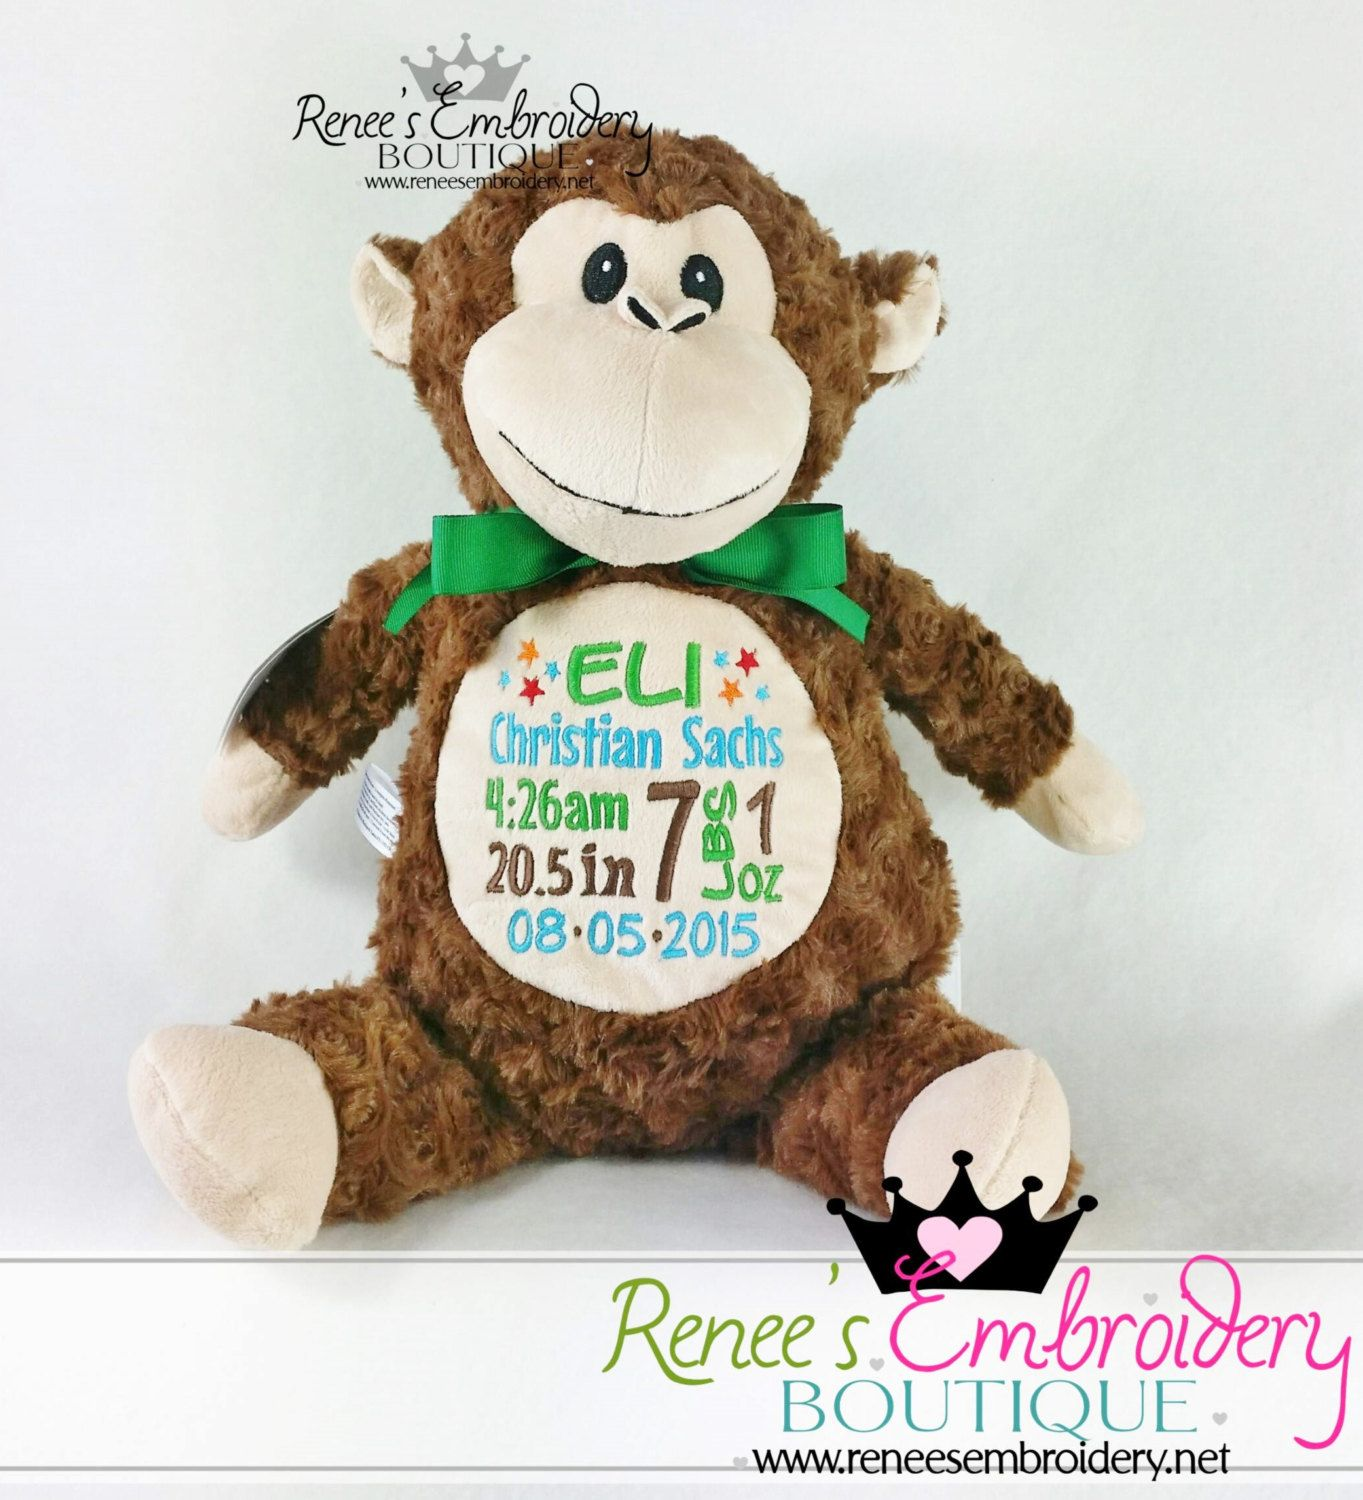 bf6075fa75 Personalized Baby Gift Baby Cubbies Stuffed Animal Birth Announcement Toy  and Keepsake by ReneesEmbroidery on Etsy